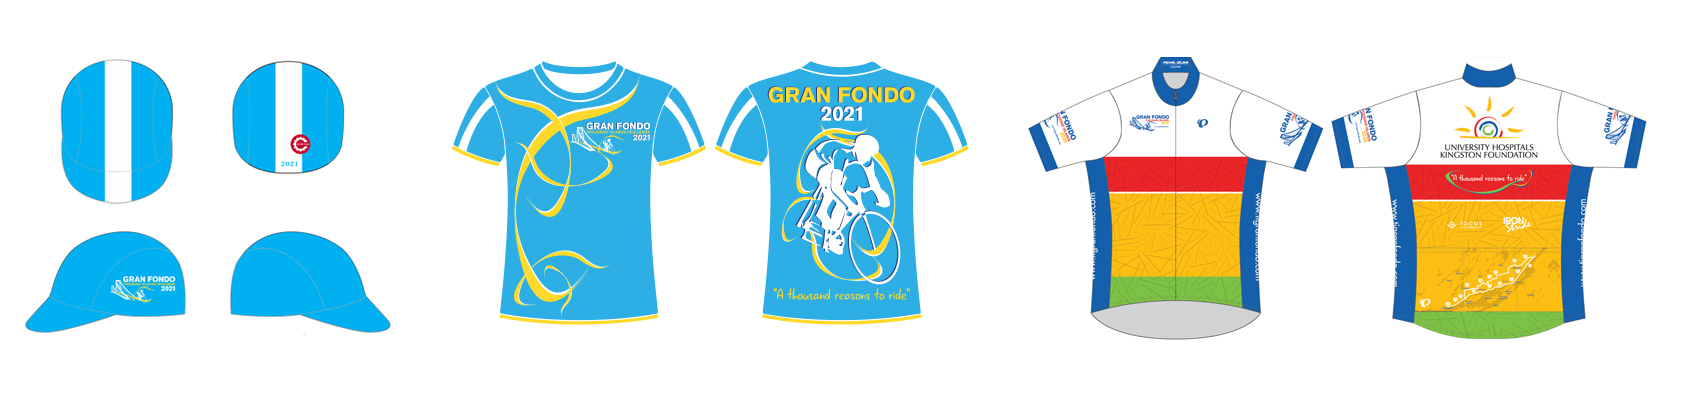 Thousand Islands Gran Fondo Challenge Swag